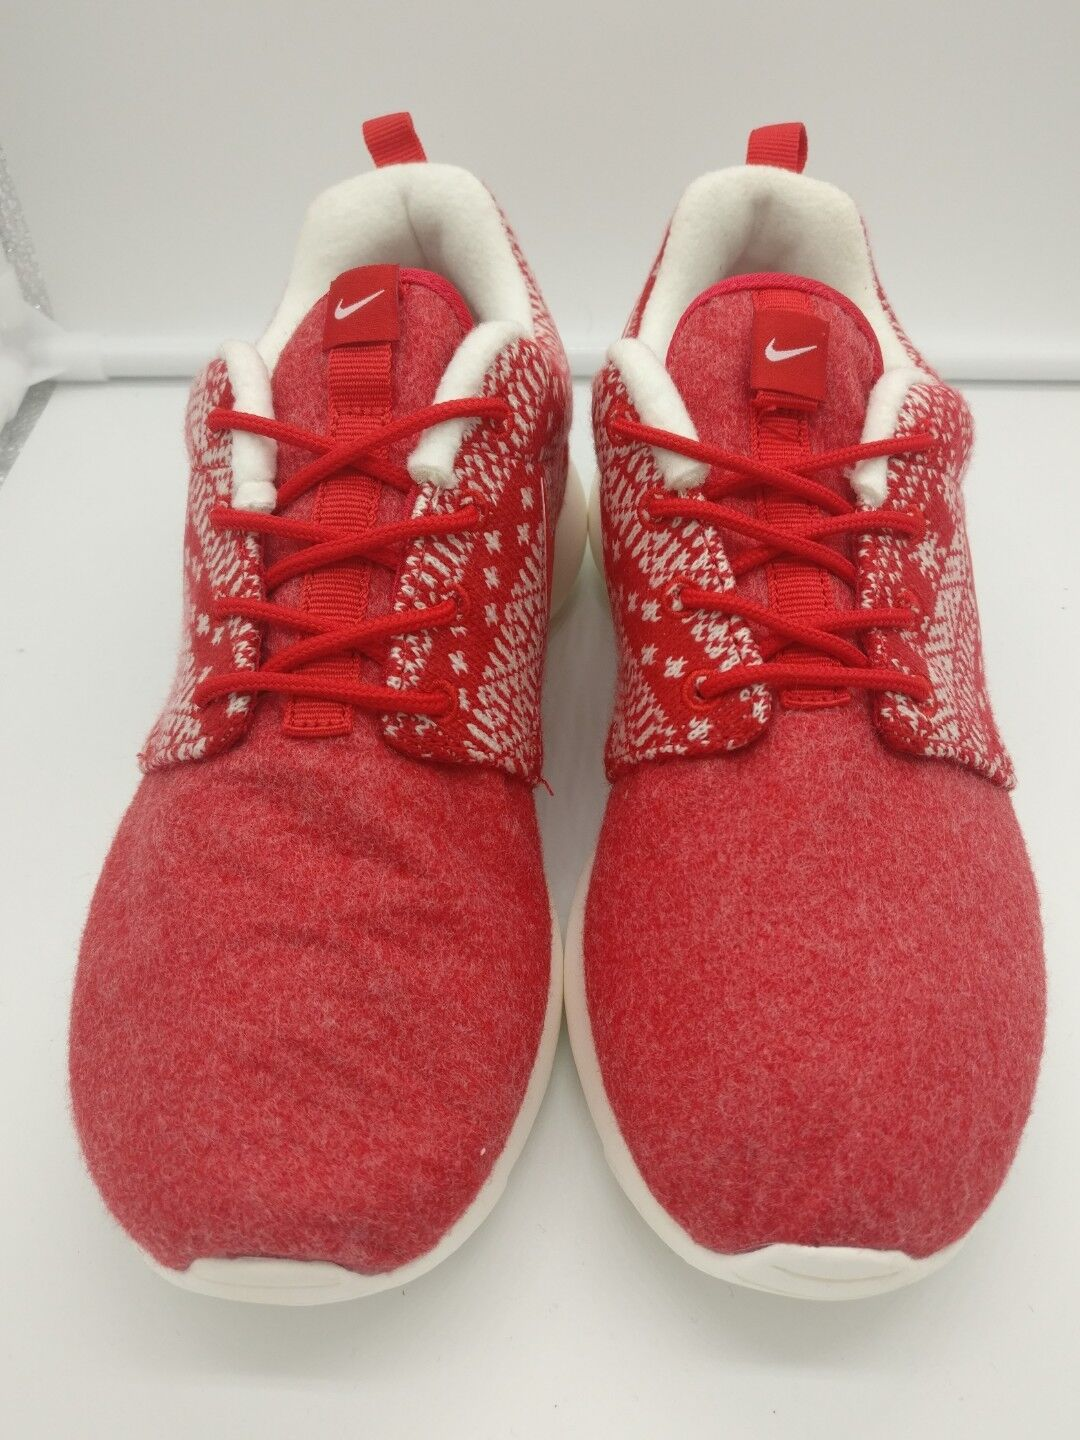 Nike Damenschuhe Roshe ROT One Winter UK 5 University ROT Roshe Sail 685286661 27f818